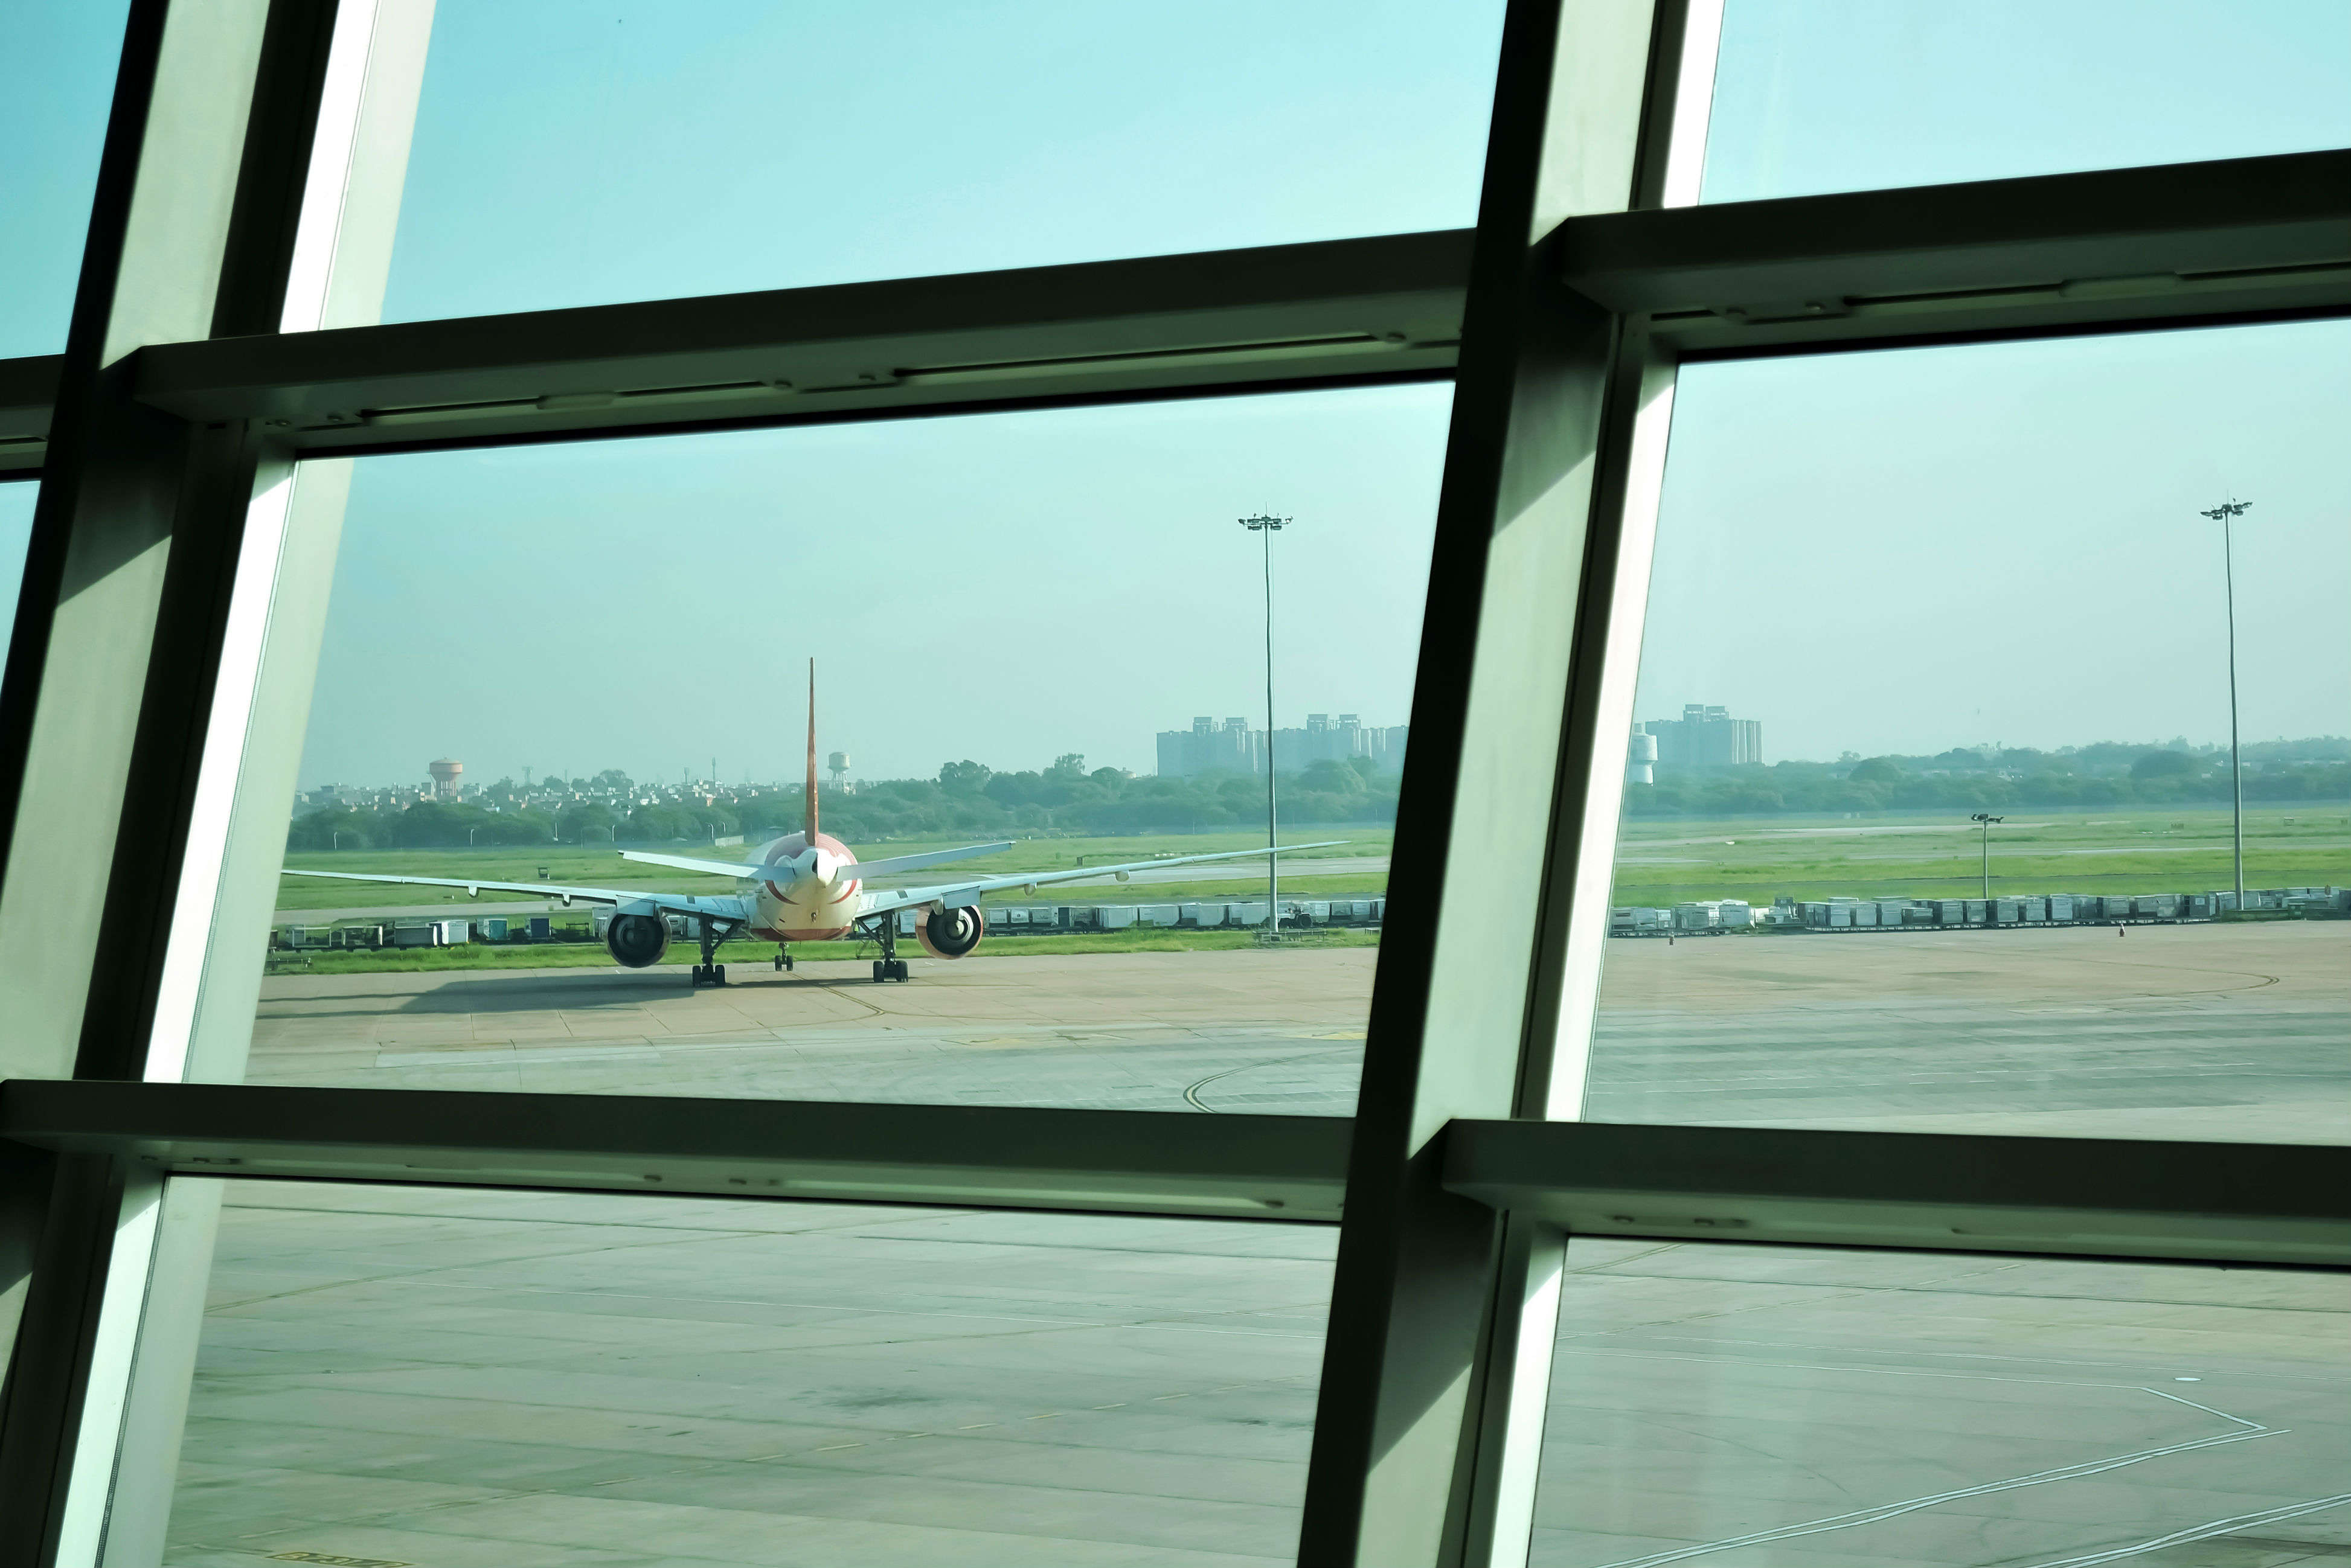 Mumbai airport runway repair-works result in cancelled flights and surge in airfares